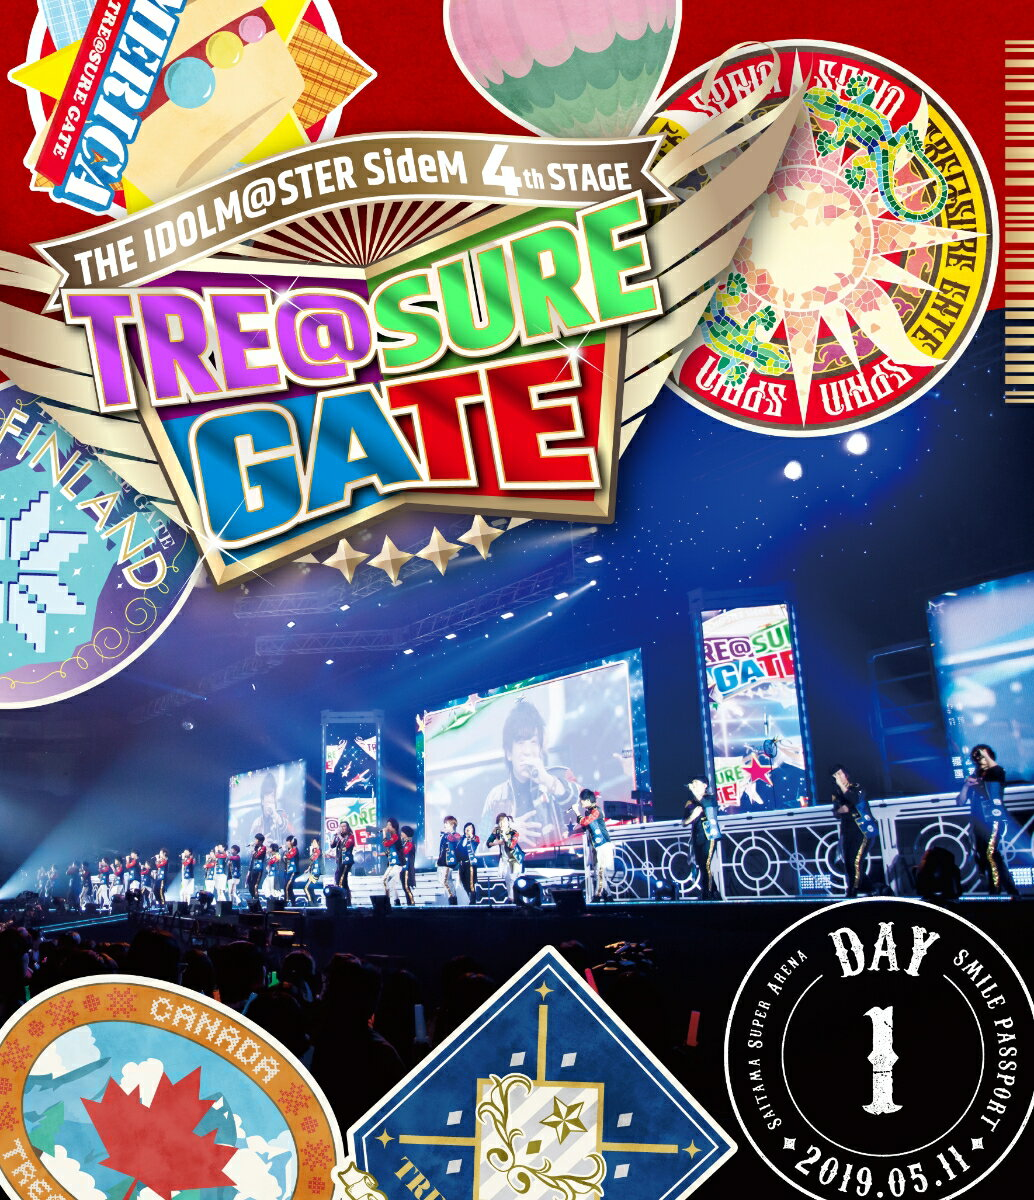 THE IDOLM@STER SideM 4th STAGE 〜TRE@SURE GATE〜 LIVE Blu-ray SMILE PASSPORT(DAY1通常版)【Blu-ray】画像